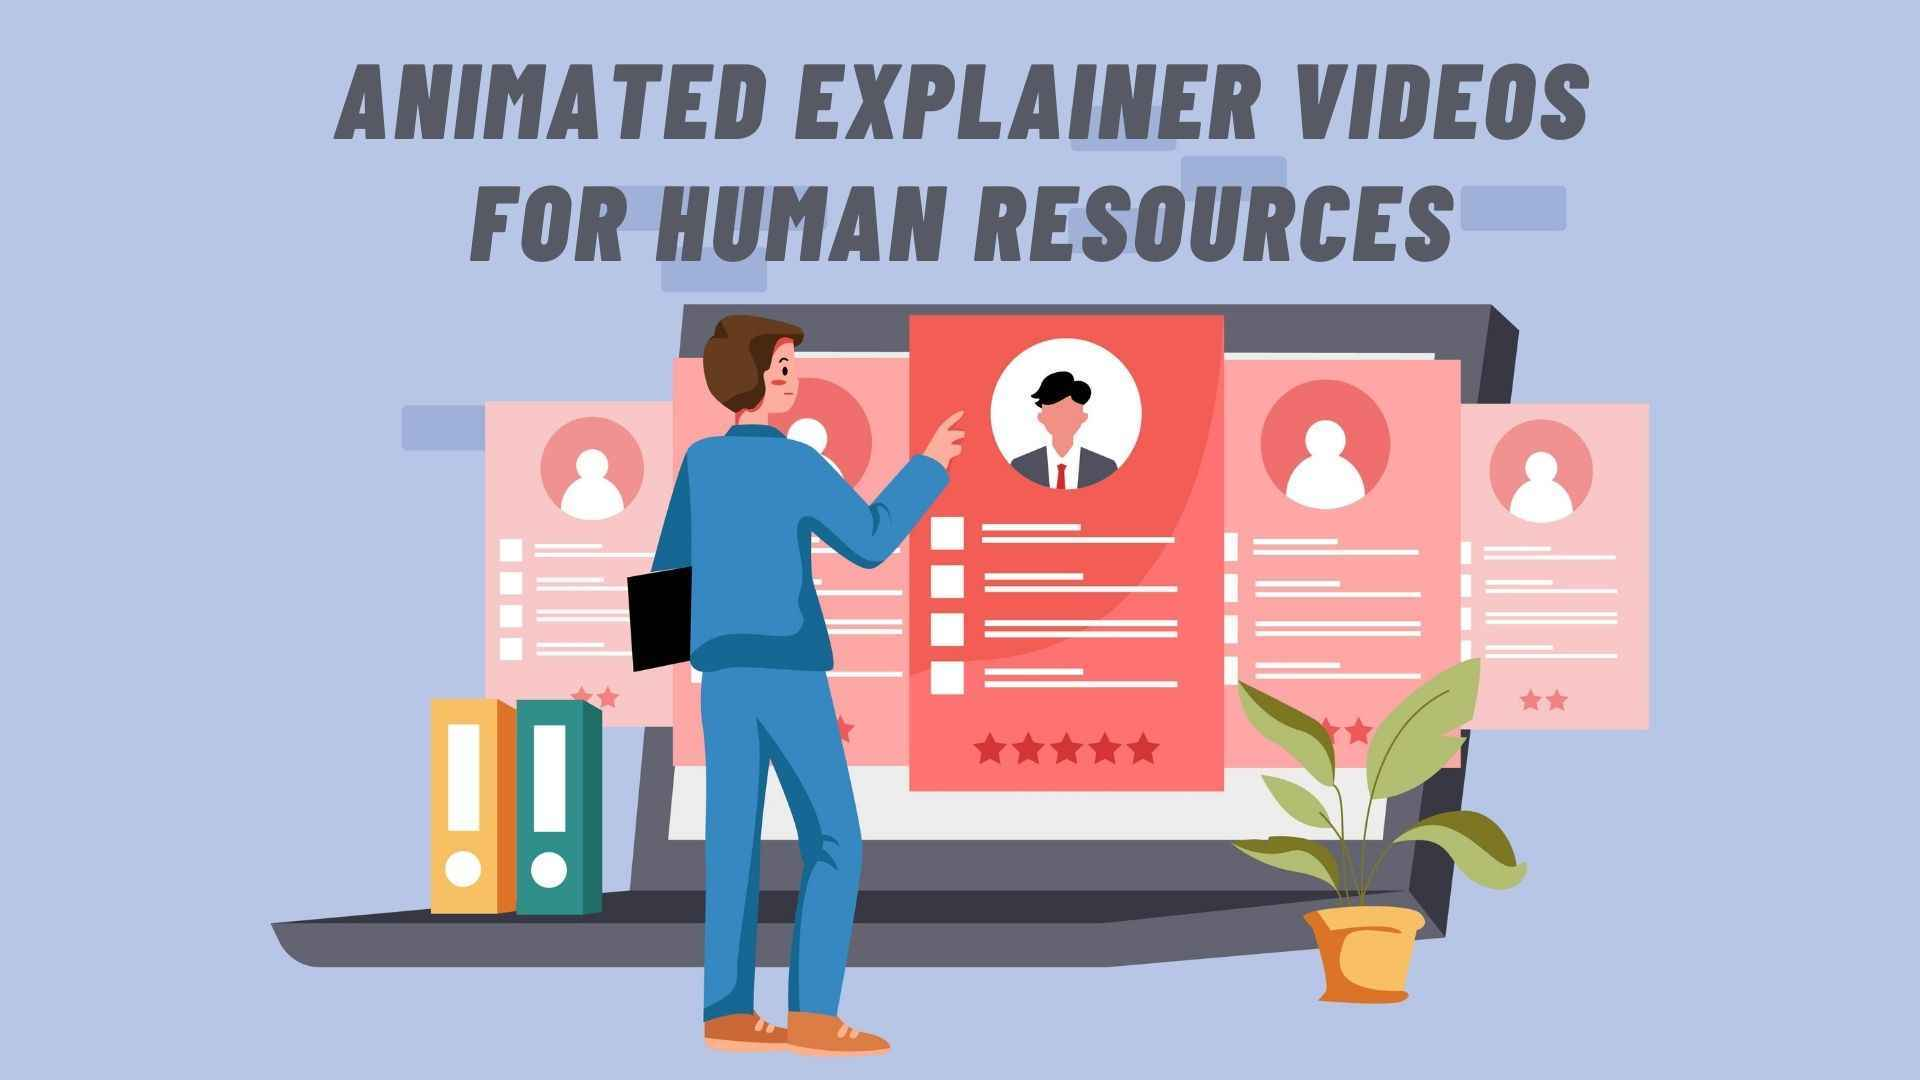 Animated Explainer Videos for Human Resources